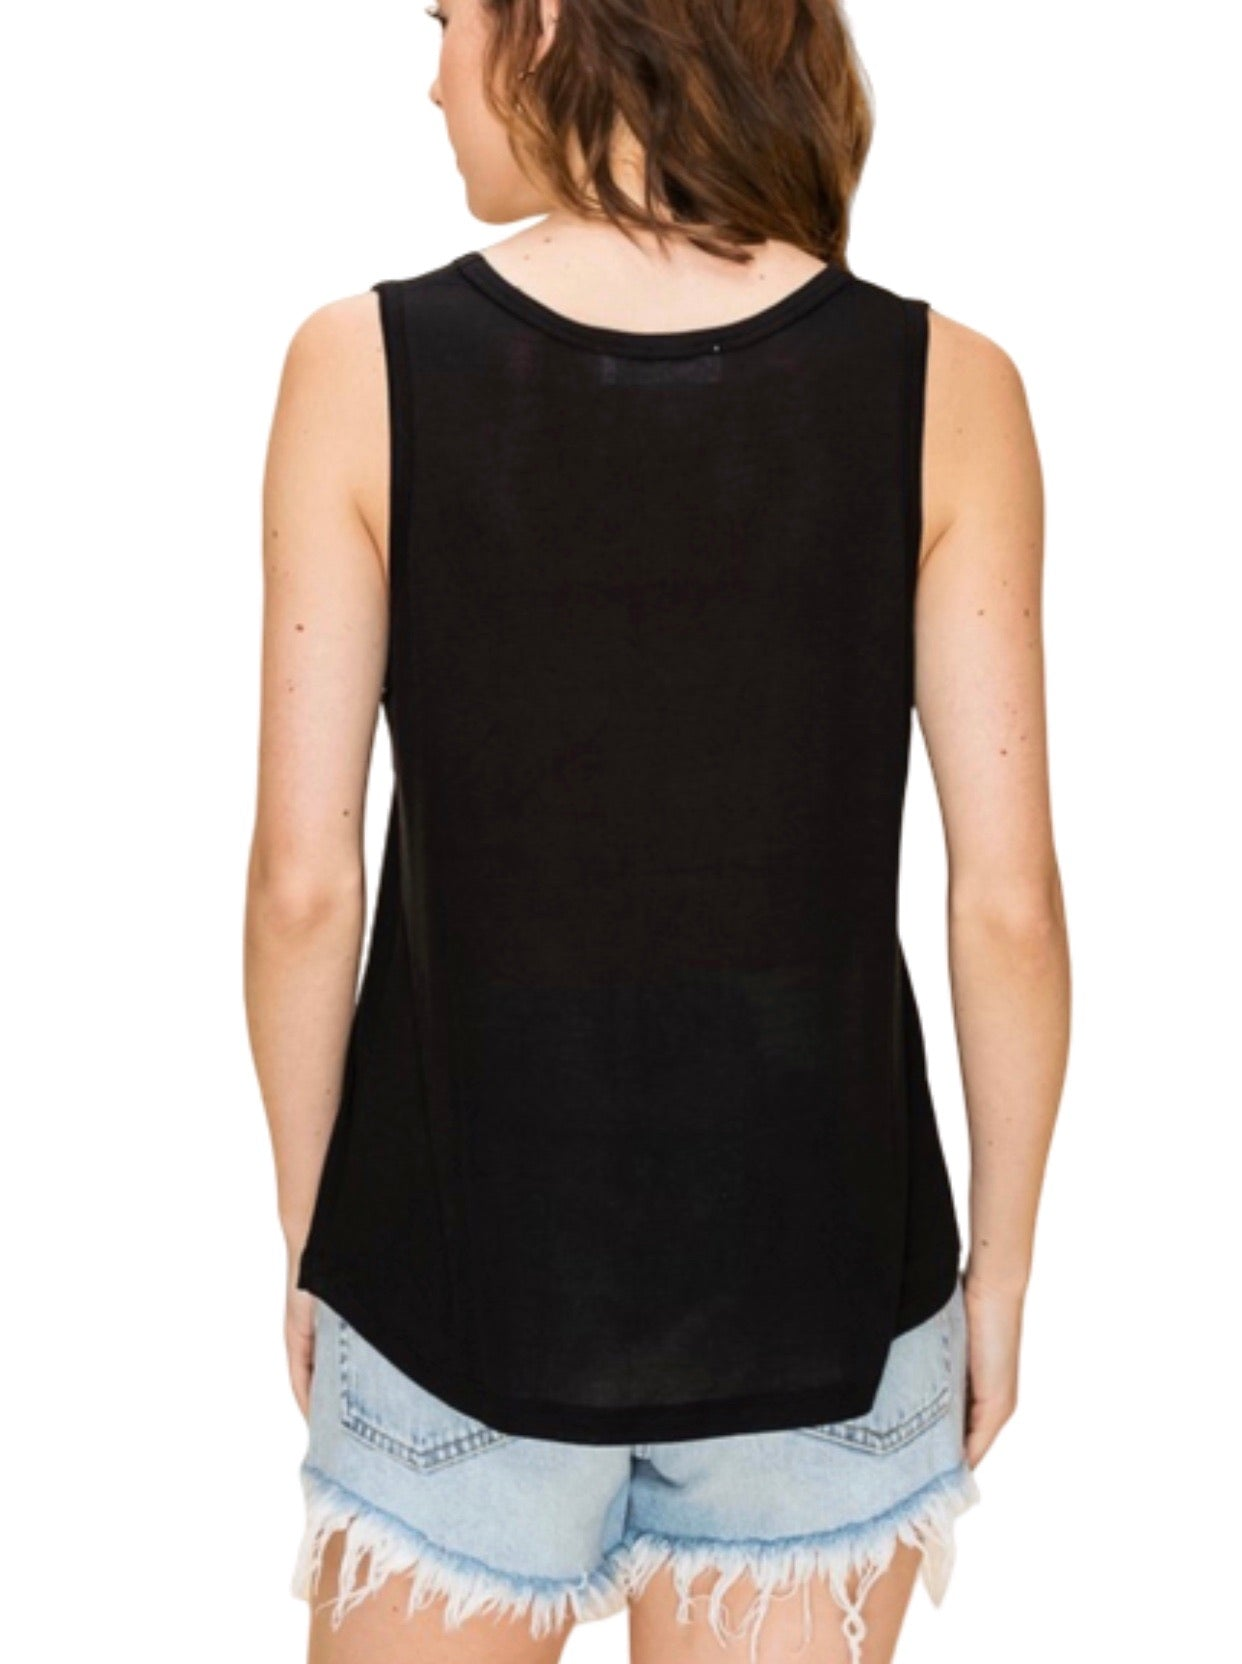 New ! The Basically Everything Sleeveless Top